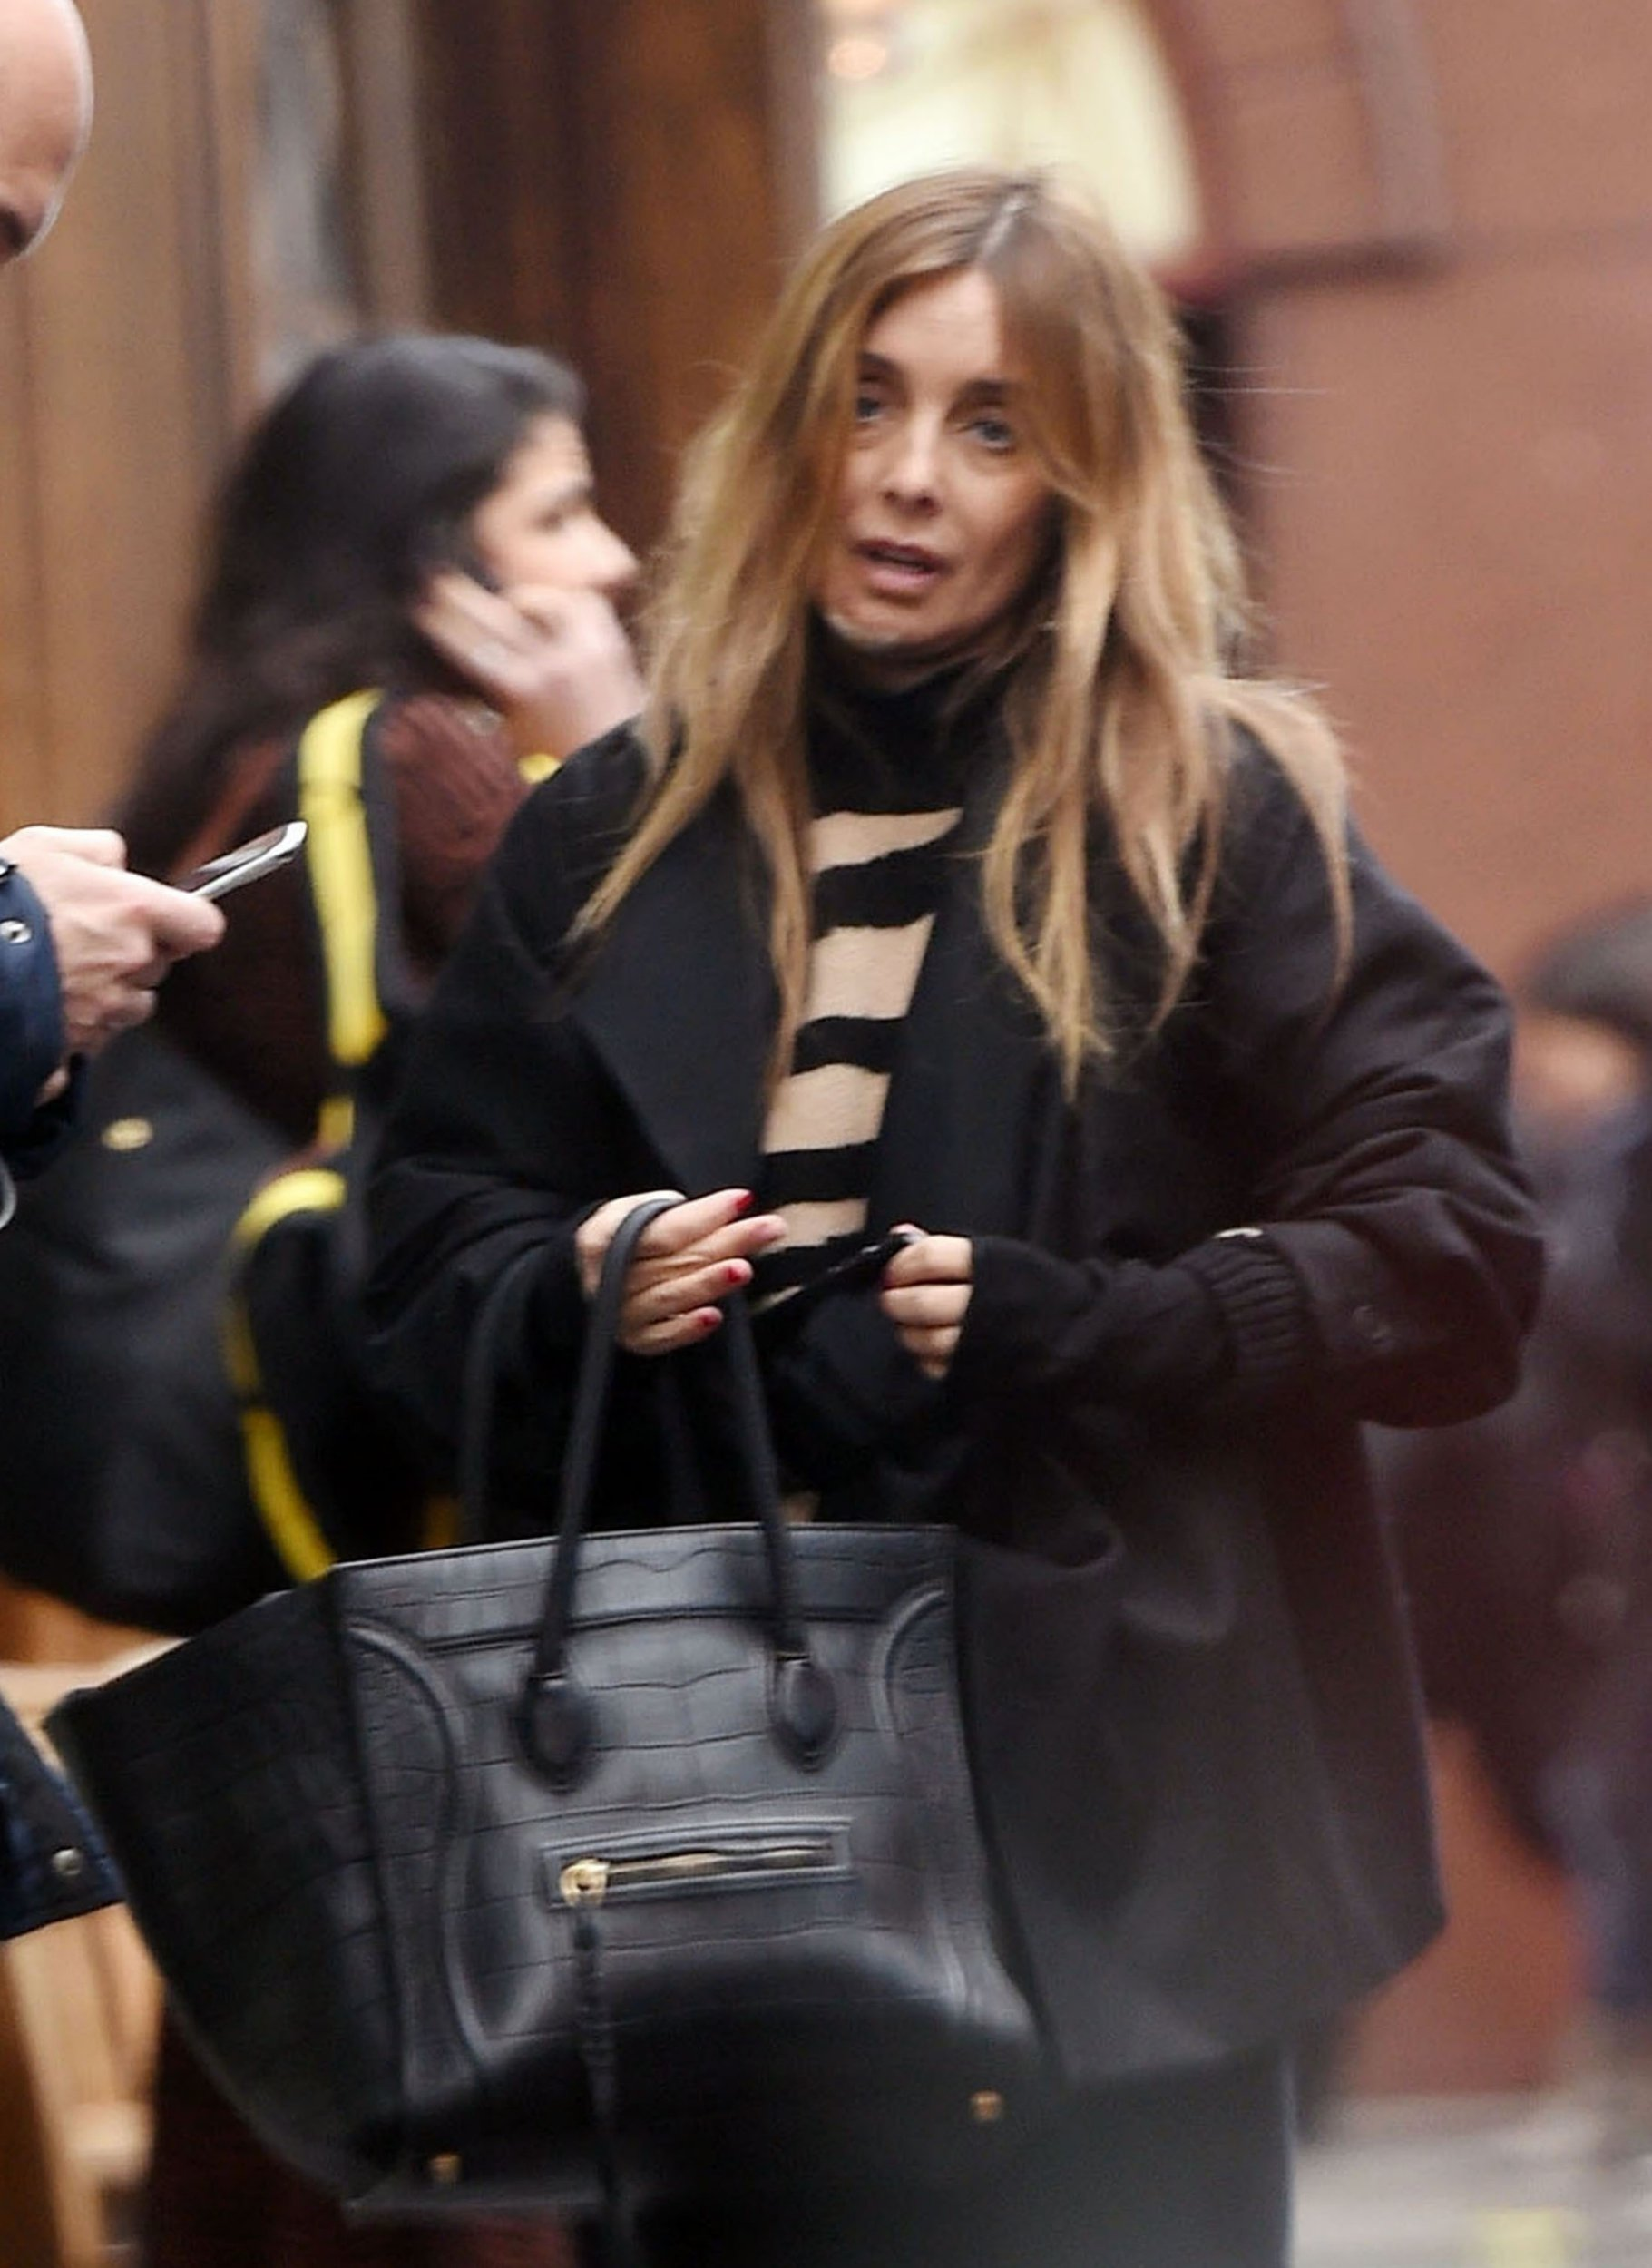 BGUK_1452636 - London, UNITED KINGDOM - *EXCLUSIVE* - WEB MUST CALL FOR PRICING - Louise Redknapp seems a little pre-occupied on her mobile phone pulling a few exasperated expressions out with a mystery man as she dines out at the Soho House members club in London. Louise who endured a turbulent 2018 with the marriage breakup from the former footballer Jamie Redknapp with the 44-year-old former Eternal singer involved in a series of reported rumoured relationships ever since her split. Pictured: Louise Redknapp BACKGRID UK 9 JANUARY 2019 BYLINE MUST READ: ZJ / BACKGRID UK: +44 208 344 2007 / uksales@backgrid.com USA: +1 310 798 9111 / usasales@backgrid.com *UK Clients - Pictures Containing Children Please Pixelate Face Prior To Publication*